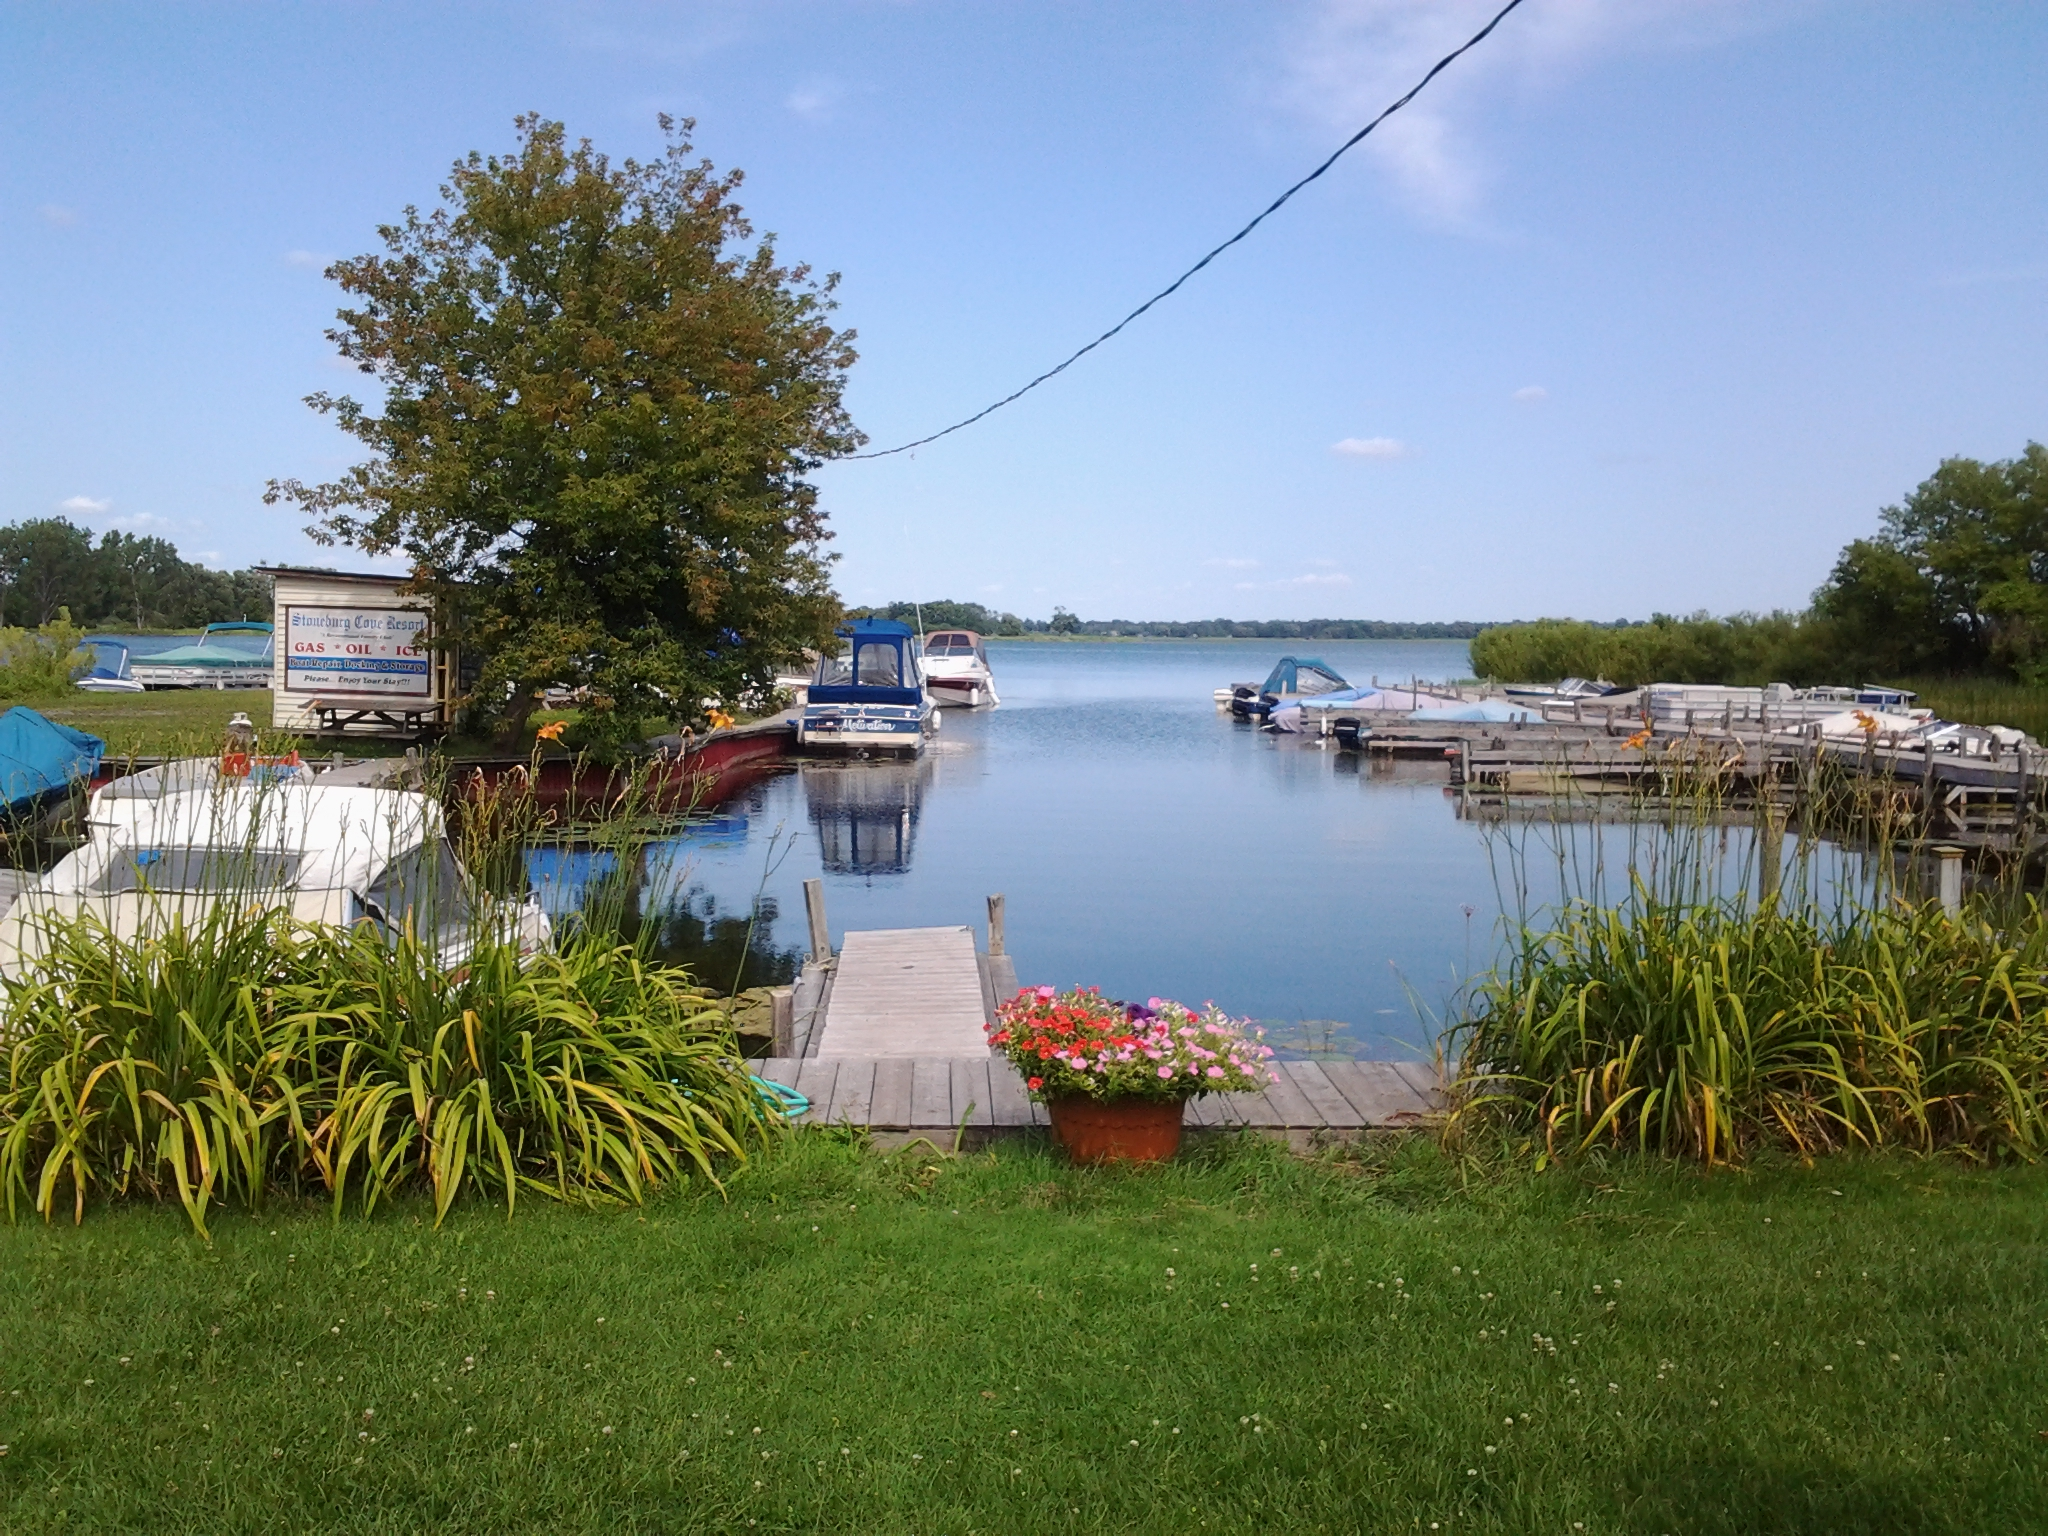 Marina, flowers, lakeside, luxury cottages, designer driven cottages